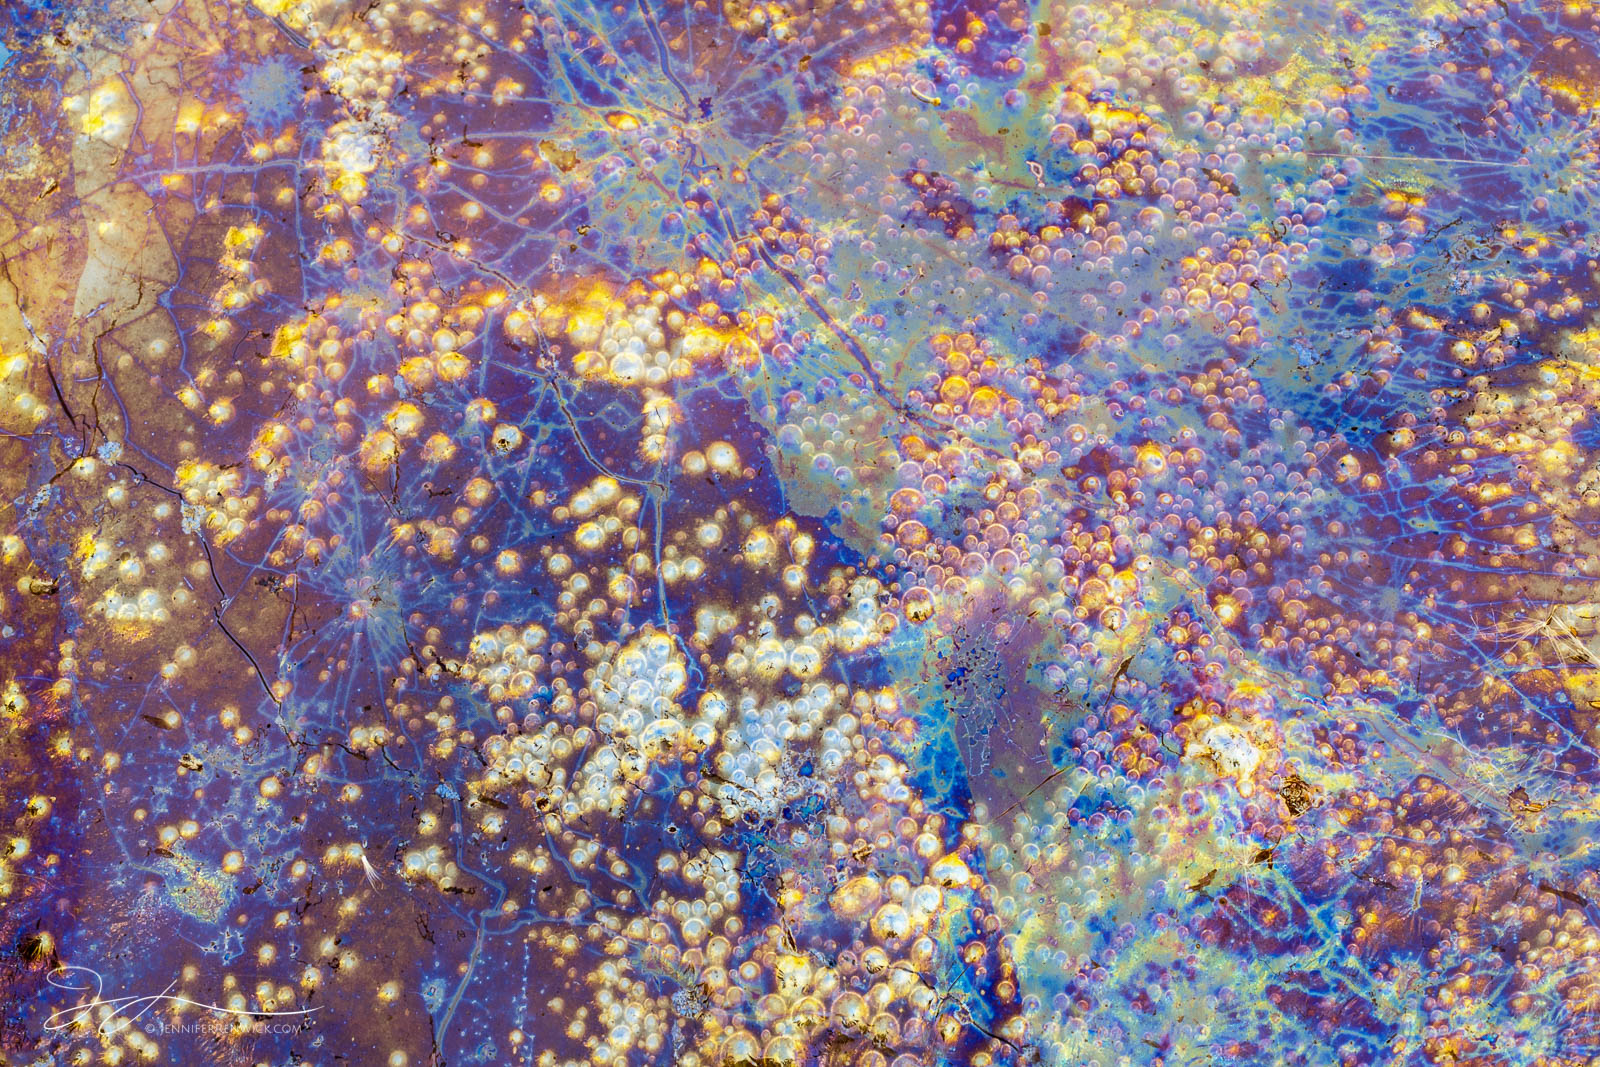 Bubbles and color mix in a small puddle full of natural oils.